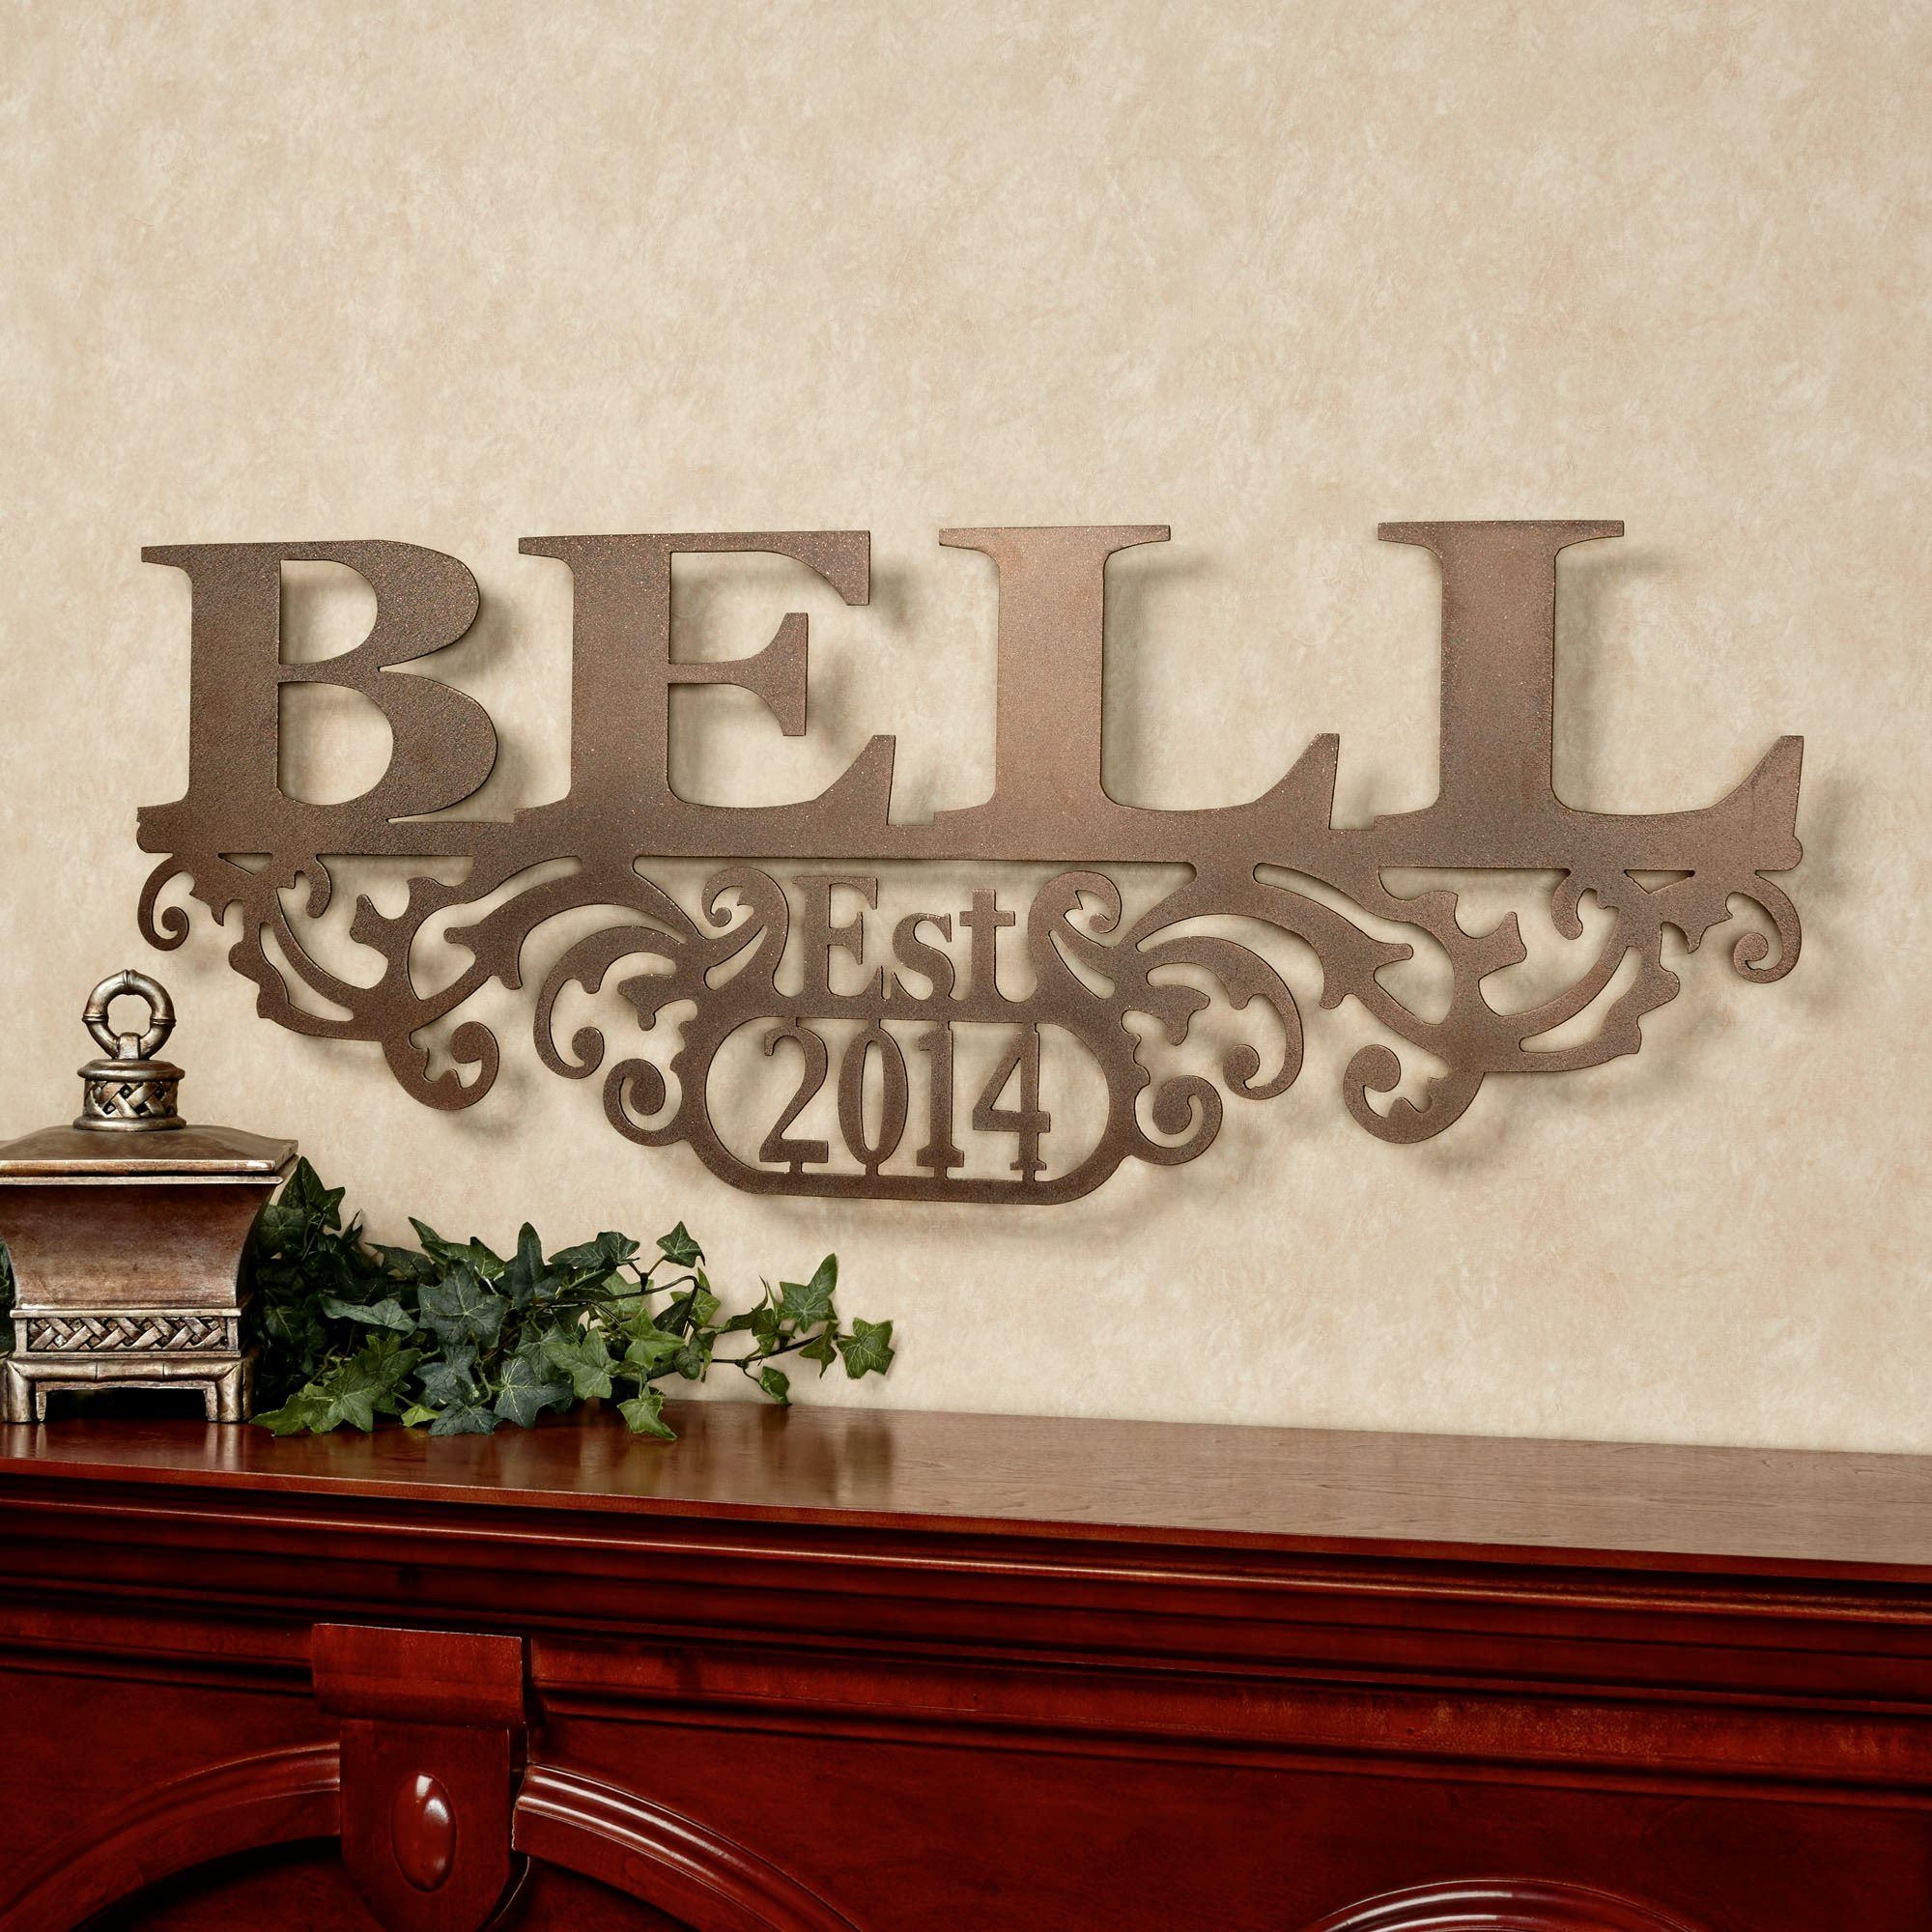 Kinship Bronze Family Name And Year Personalized Metal Wall Art Sign Regarding Personalized Wall Art With Names (Image 2 of 20)